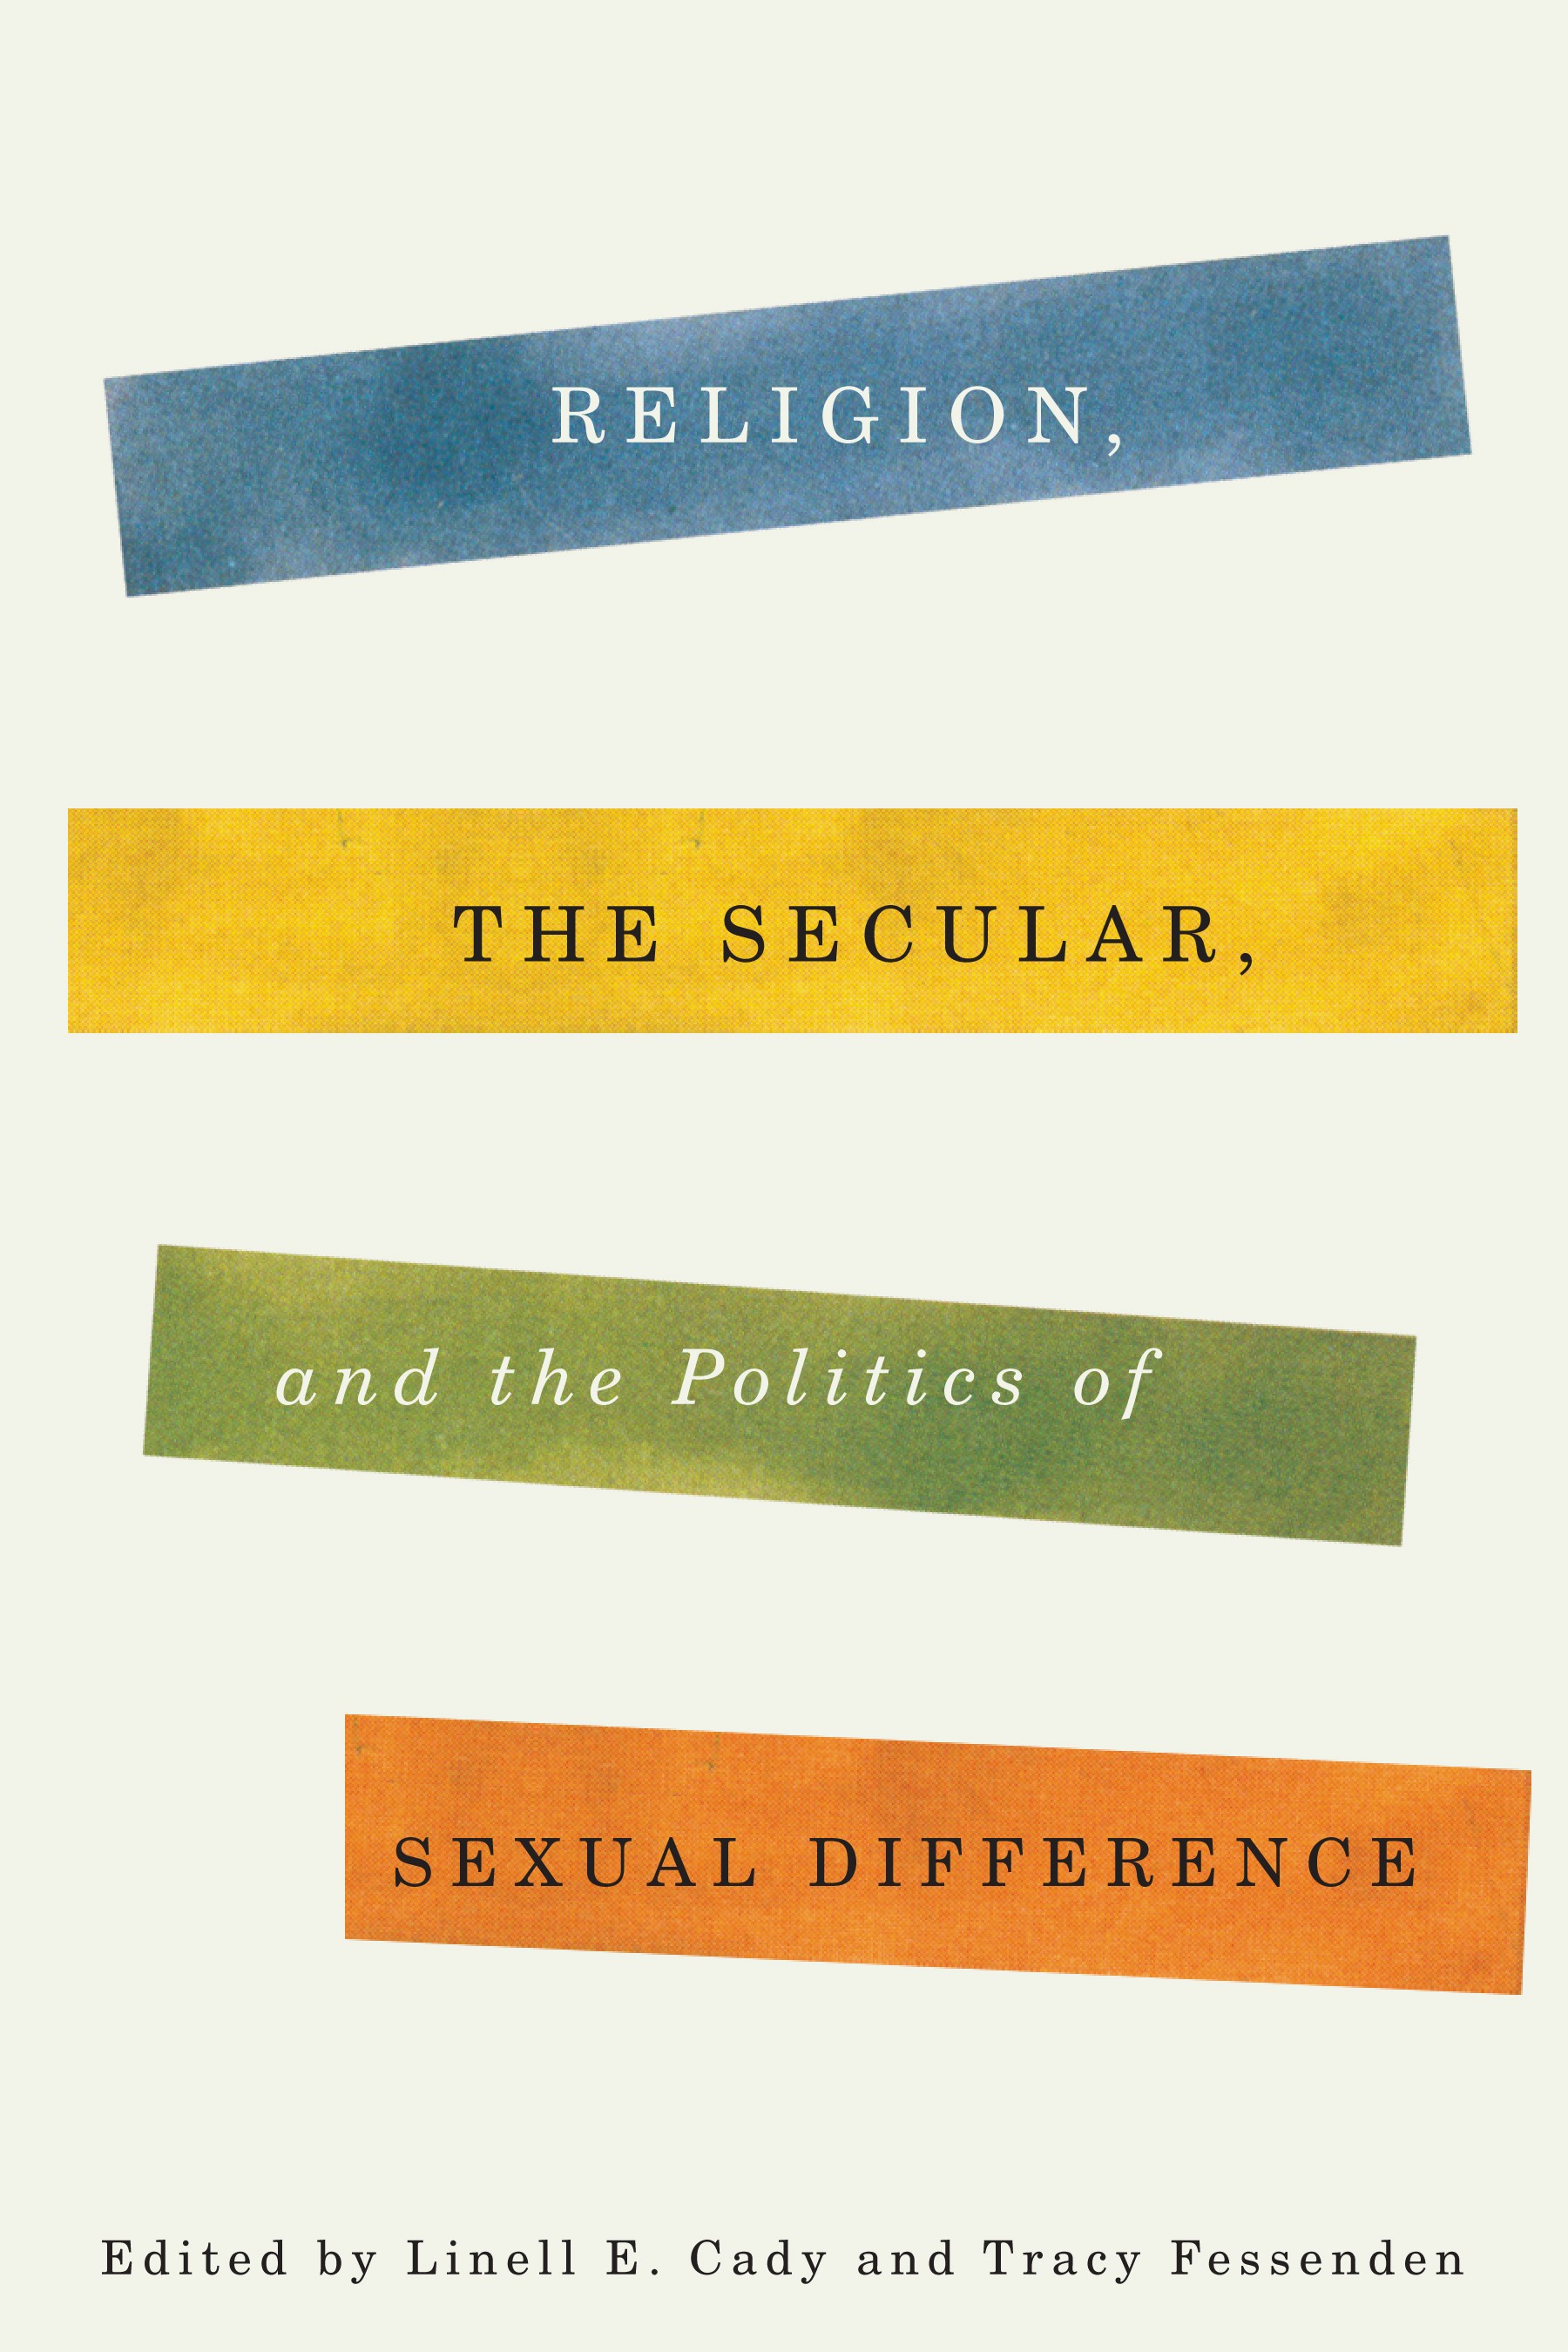 Abbildung von Religion, the Secular, and the Politics of Sexual Difference | 2013